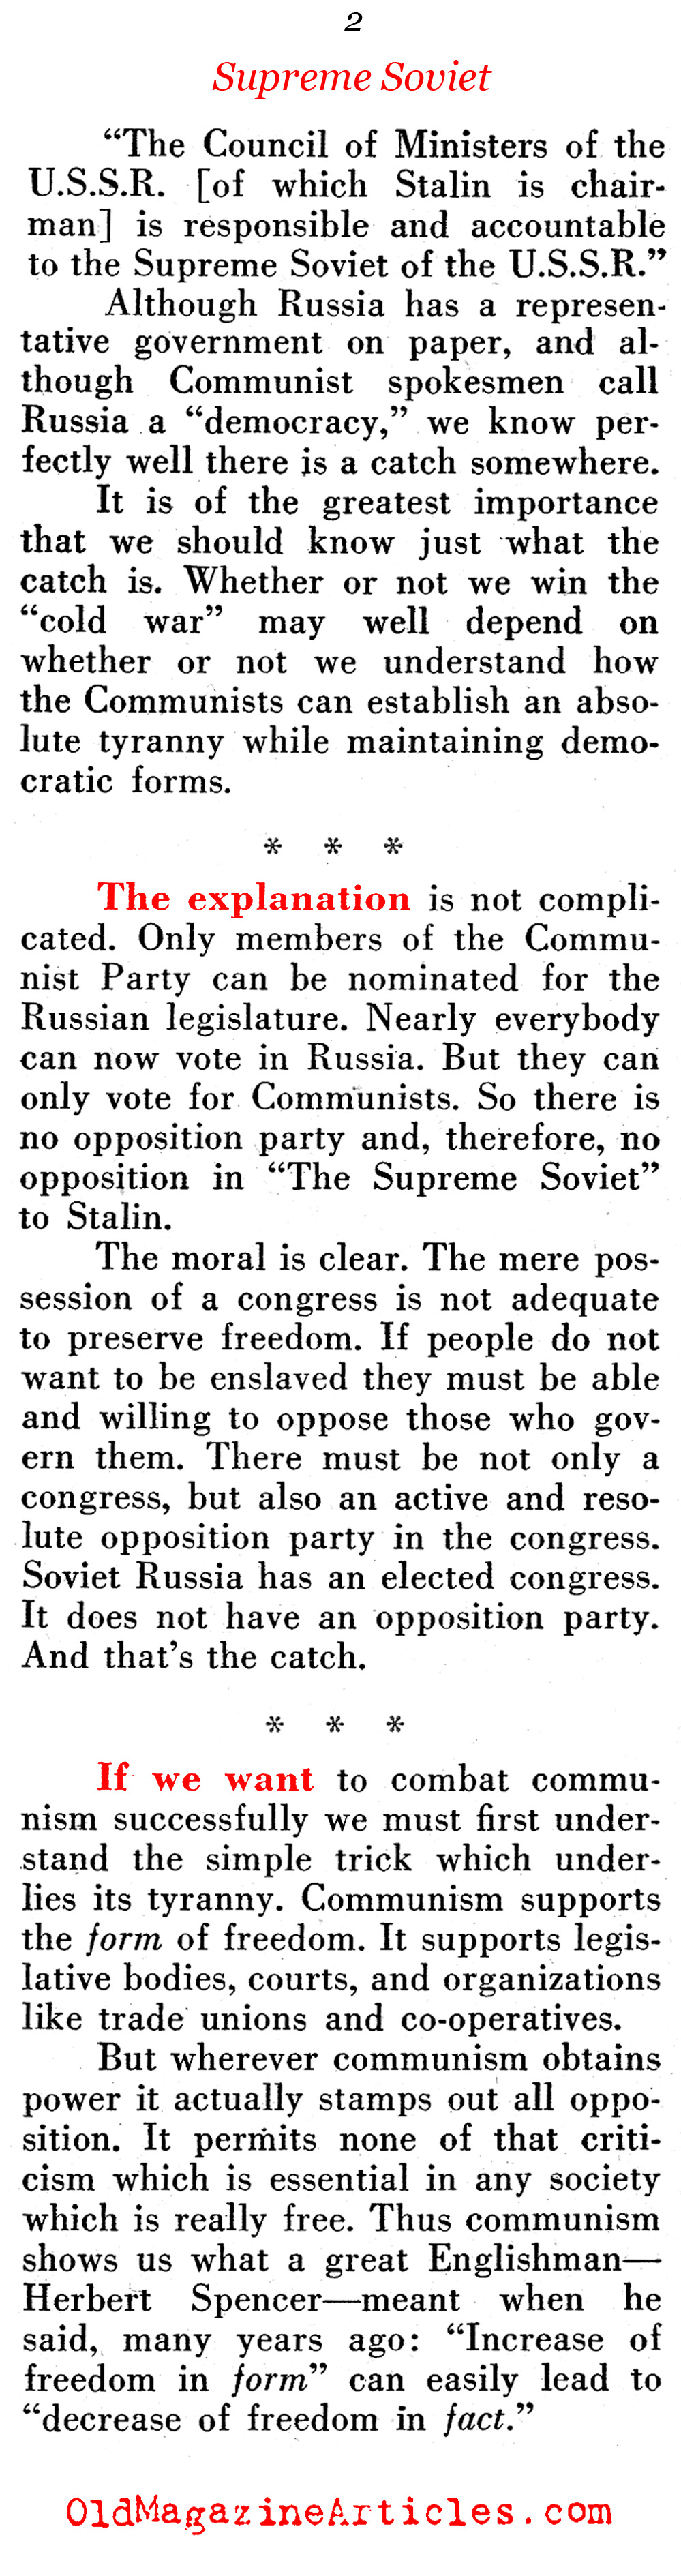 ''Russia Has a Congress'' (Pathfinder Magazine, 1949)